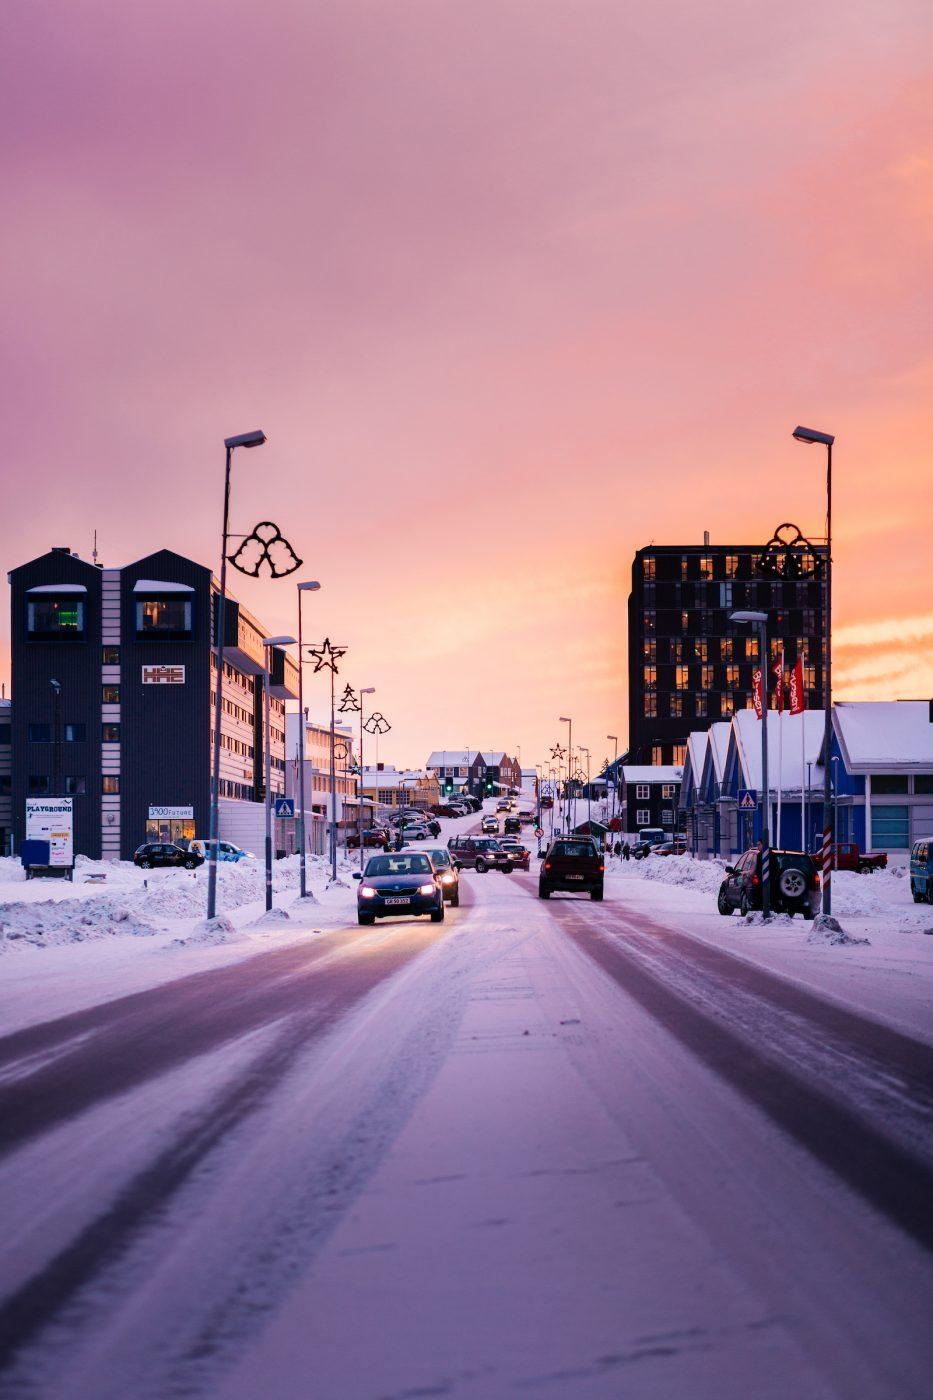 Traffic on the main road in Nuuk, Greenland on a beautiful winter sunset afternoon. Photo by Rebecca Gustafsson